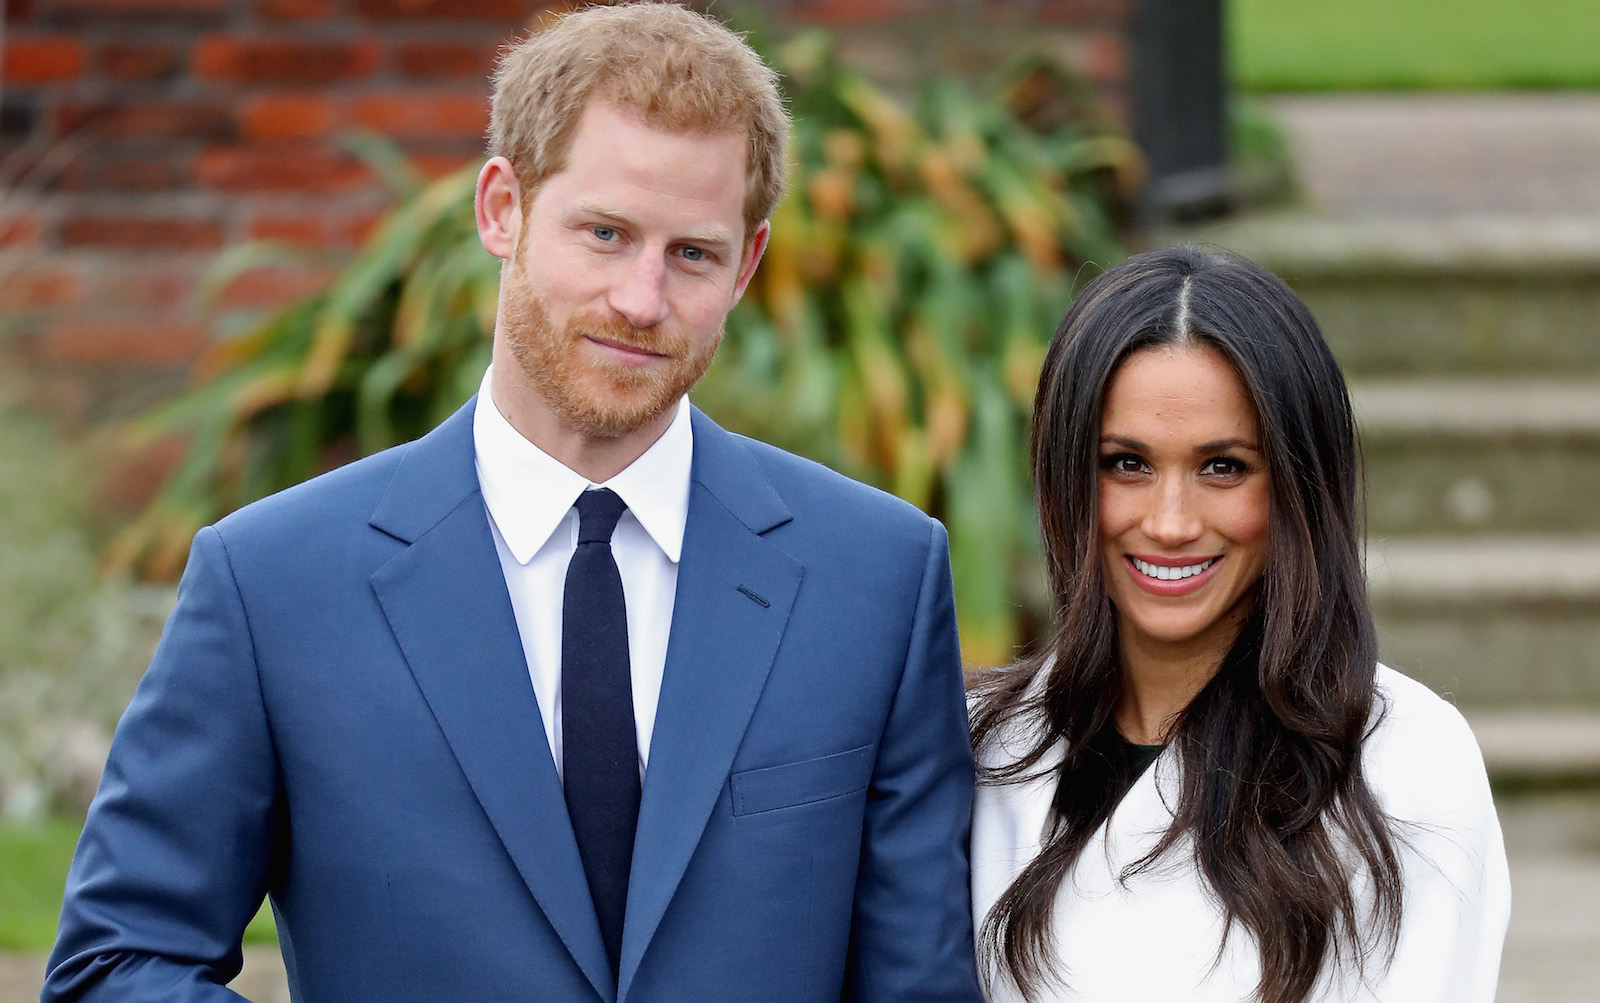 Prince Harry and Meghan Markle Announce Royal Wedding Date and Location